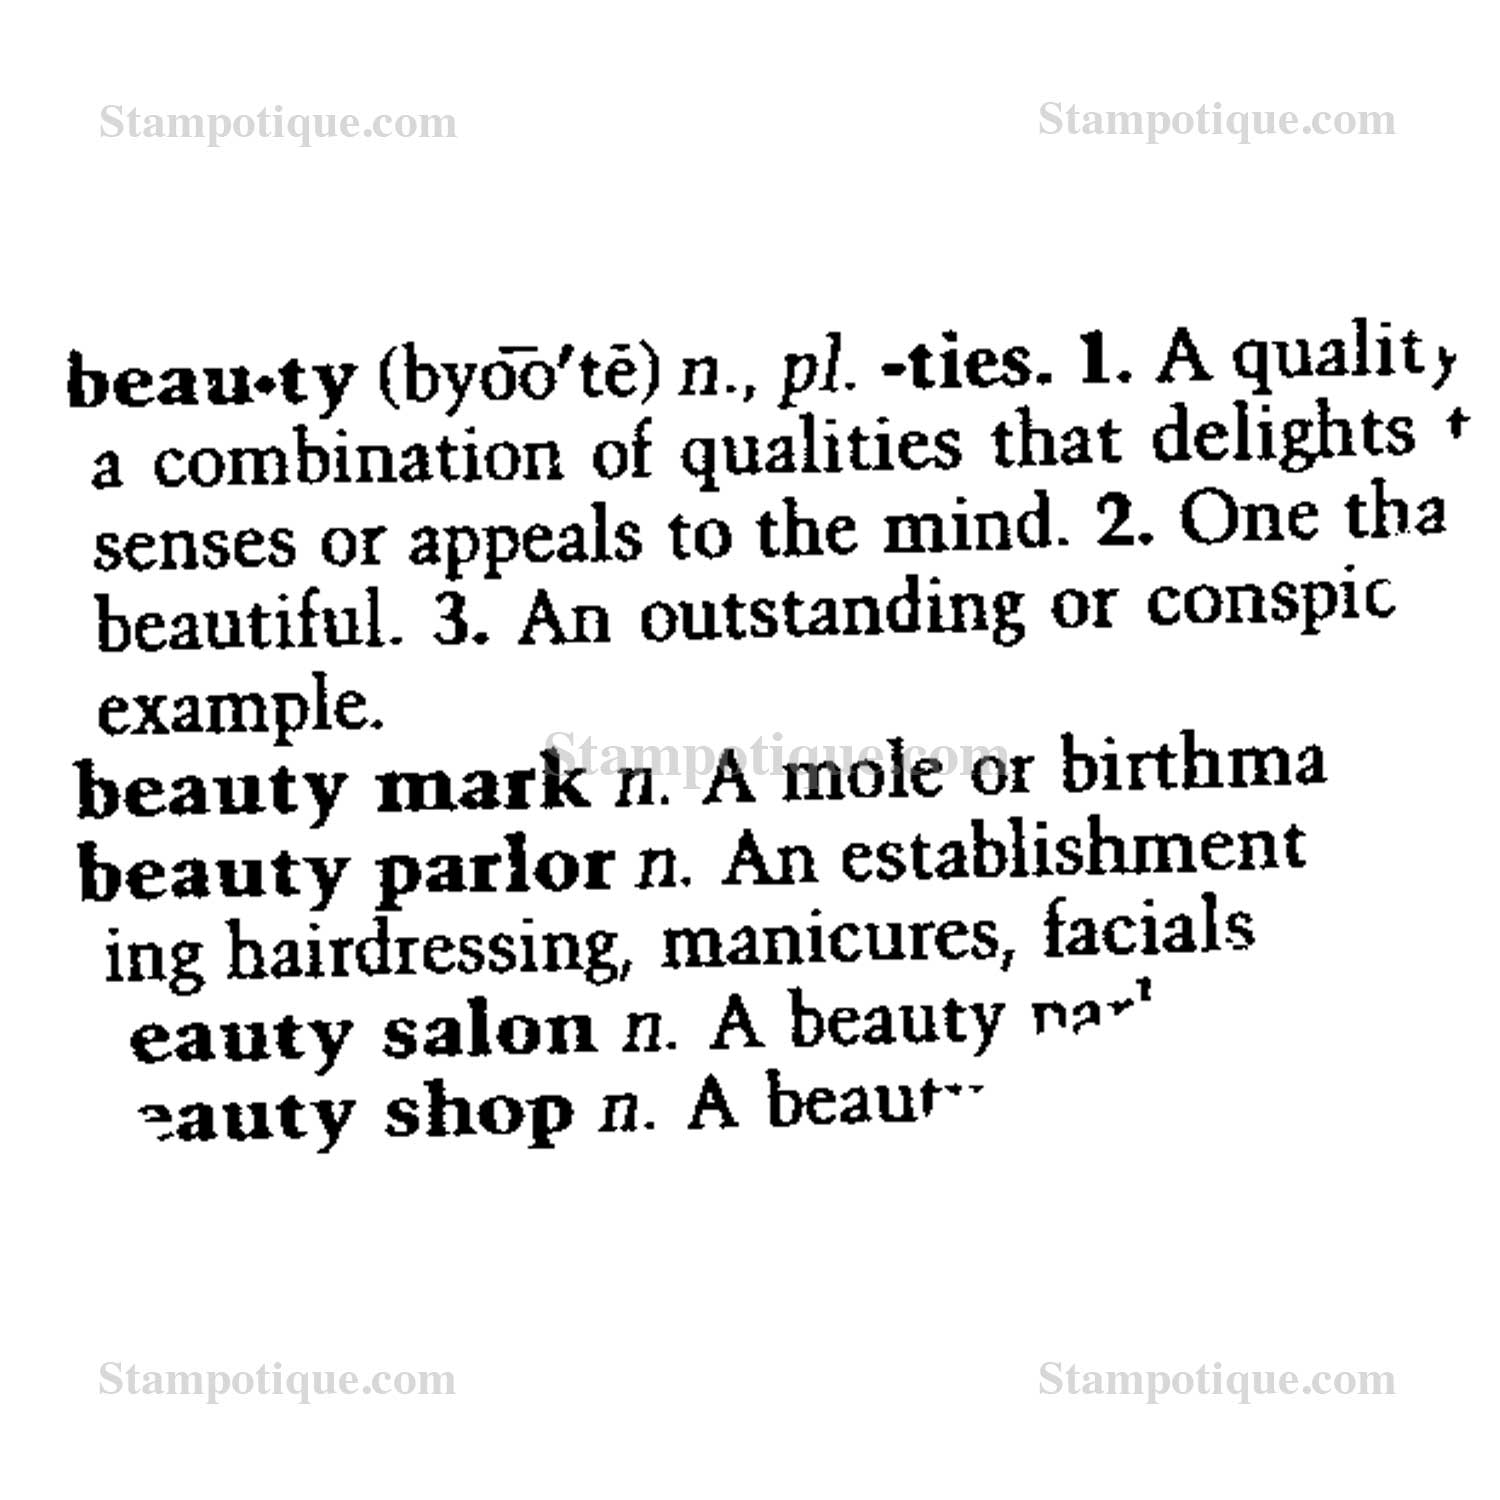 001 7070p Beauty Definition Essay Rare True Meaning Physical Means Full